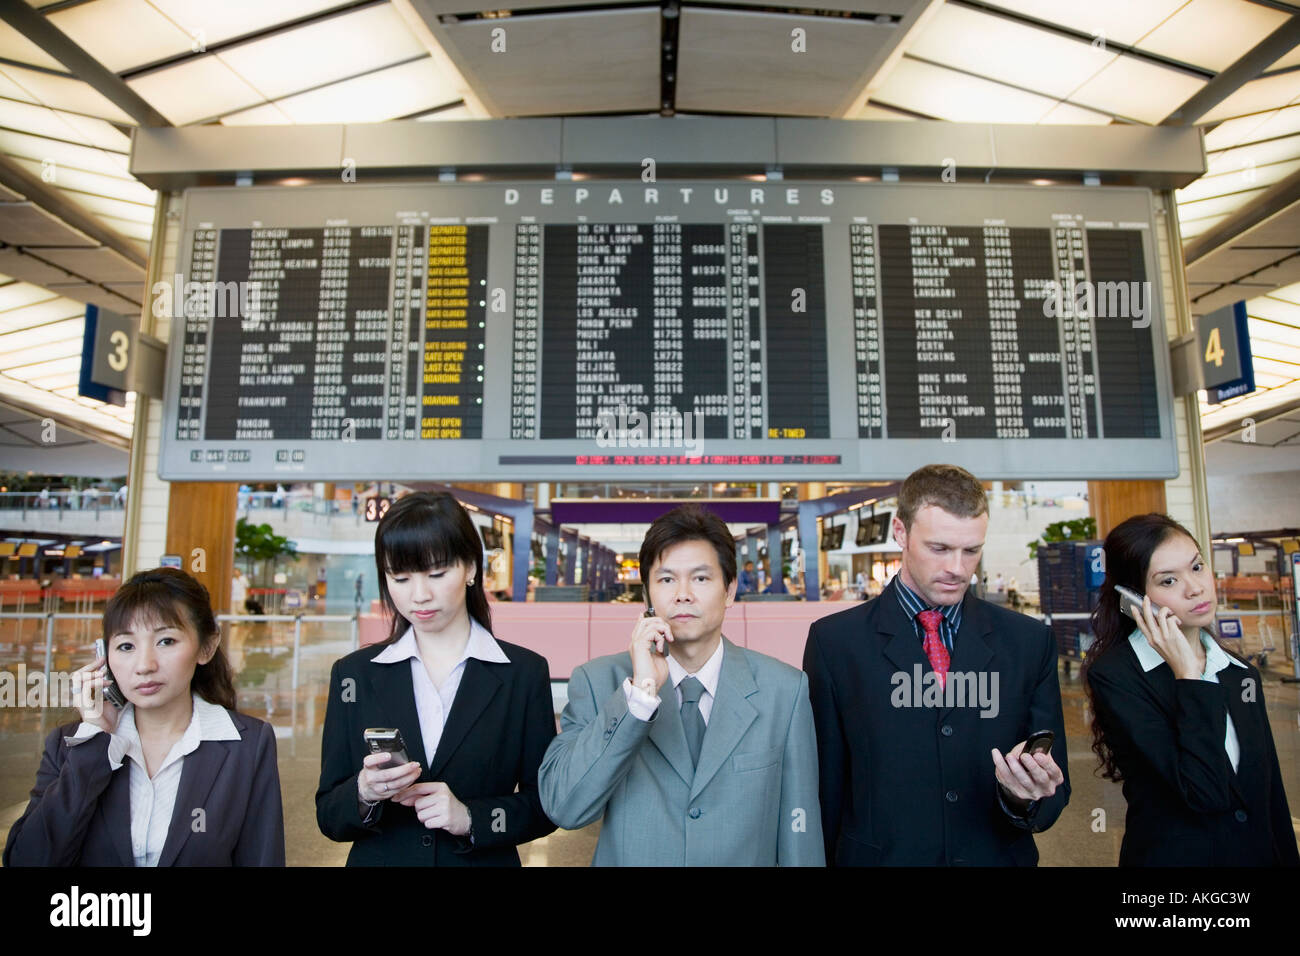 Five business executives standing in front of an arrival departure board at an airport - Stock Image